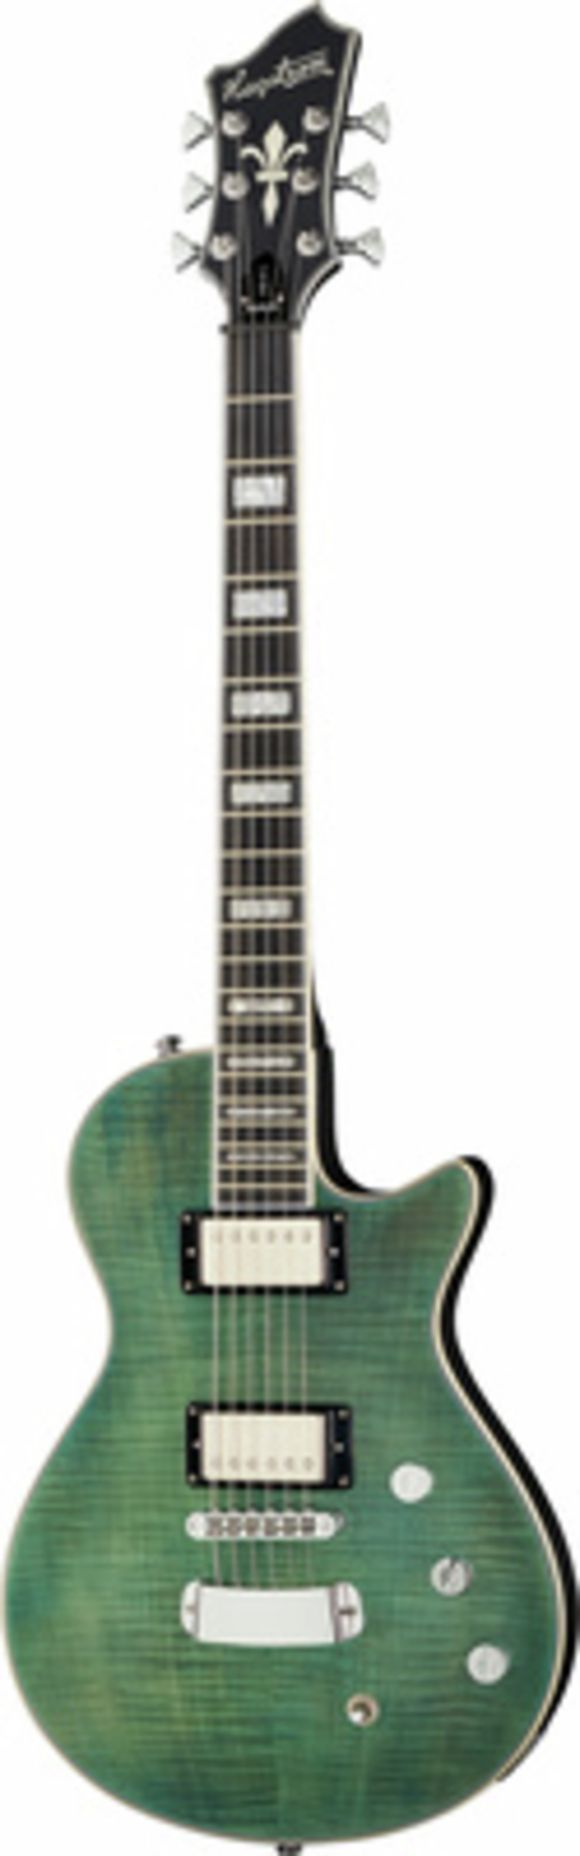 Ultra Max Fall Sky Satin Hagstrom